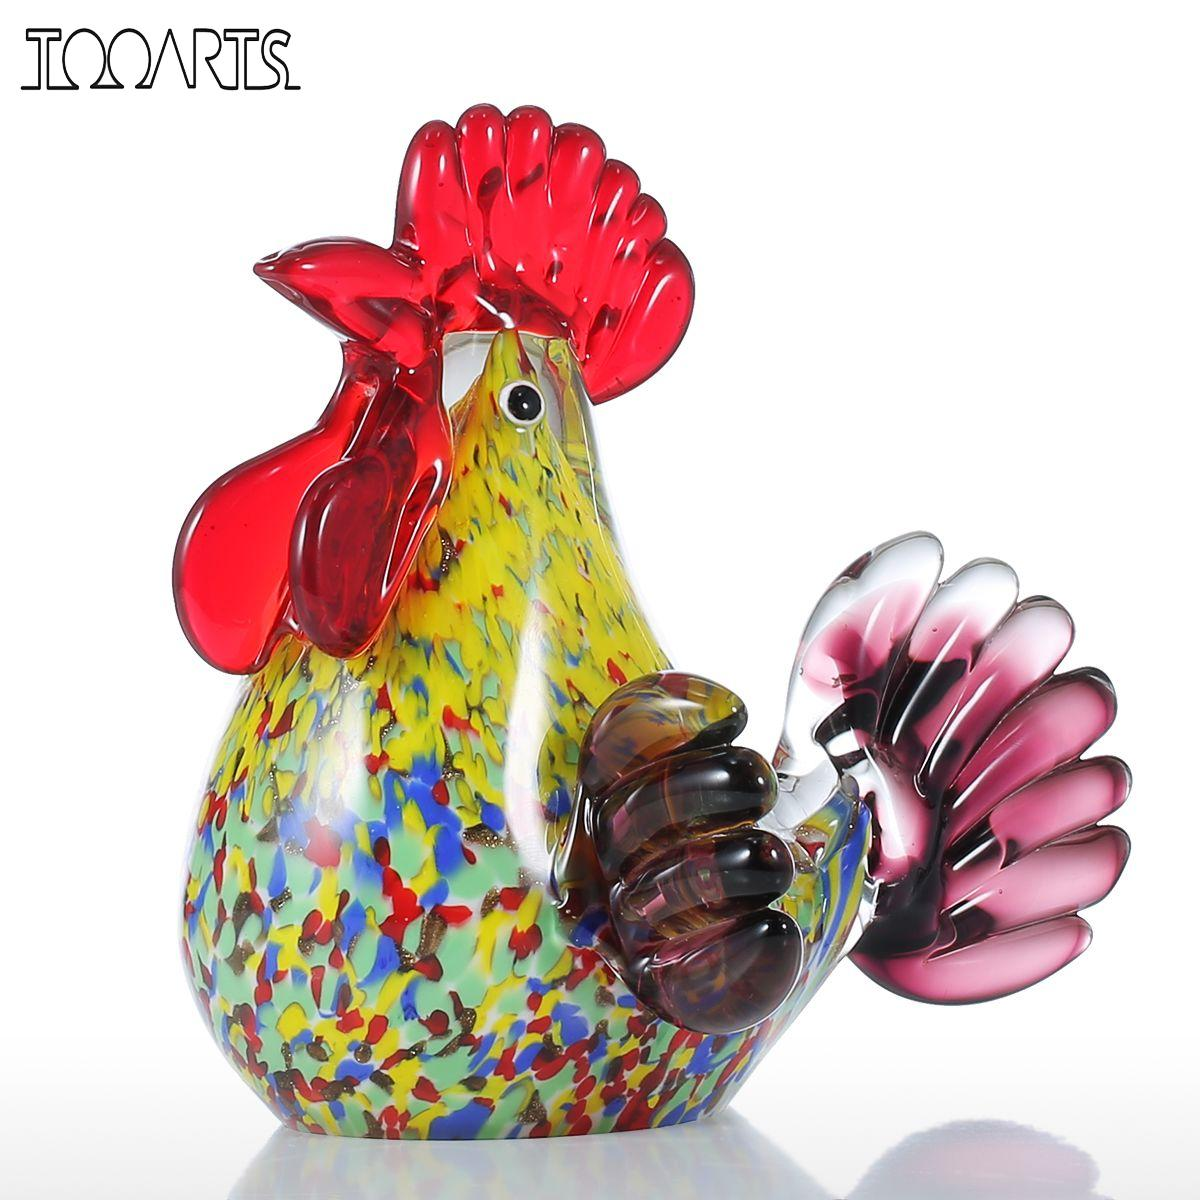 Tooarts Sculpture Multicolor Rooster Glass Sculpture Animal Ornament Favor Gift Glass Craft Decoration For Home Office